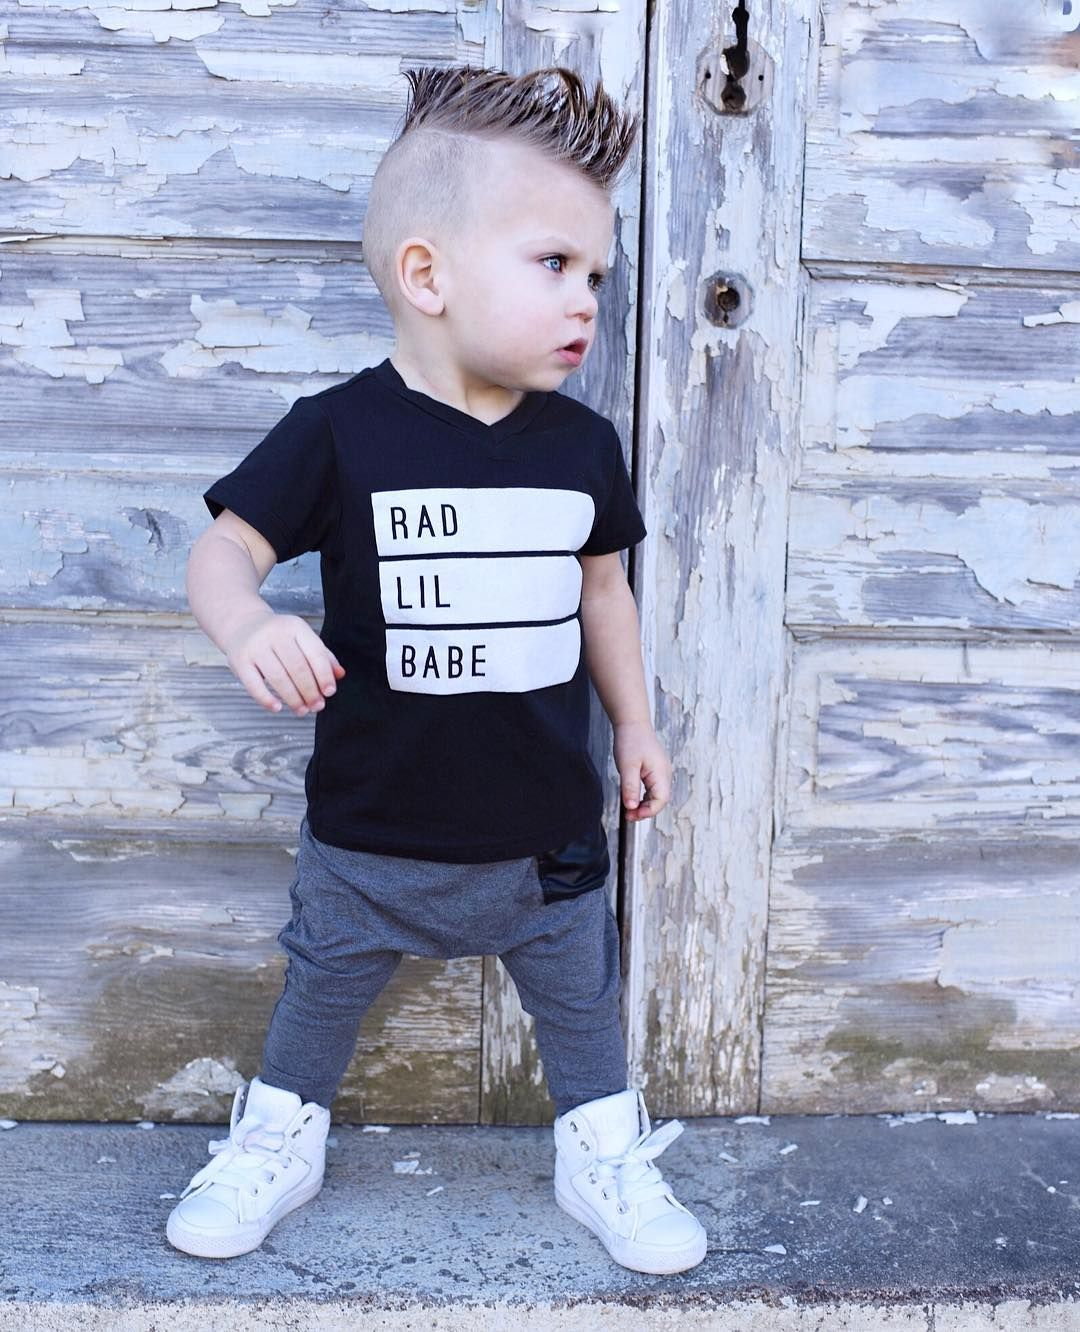 The Little Trendstar® brand is dedicated to creating cool kids clothes and specializes in hipster kids t-shirts and baby onesies that demand a second look! Our designs are all about capturing attention by focusing on impossibly cool graphics and major hipster style.